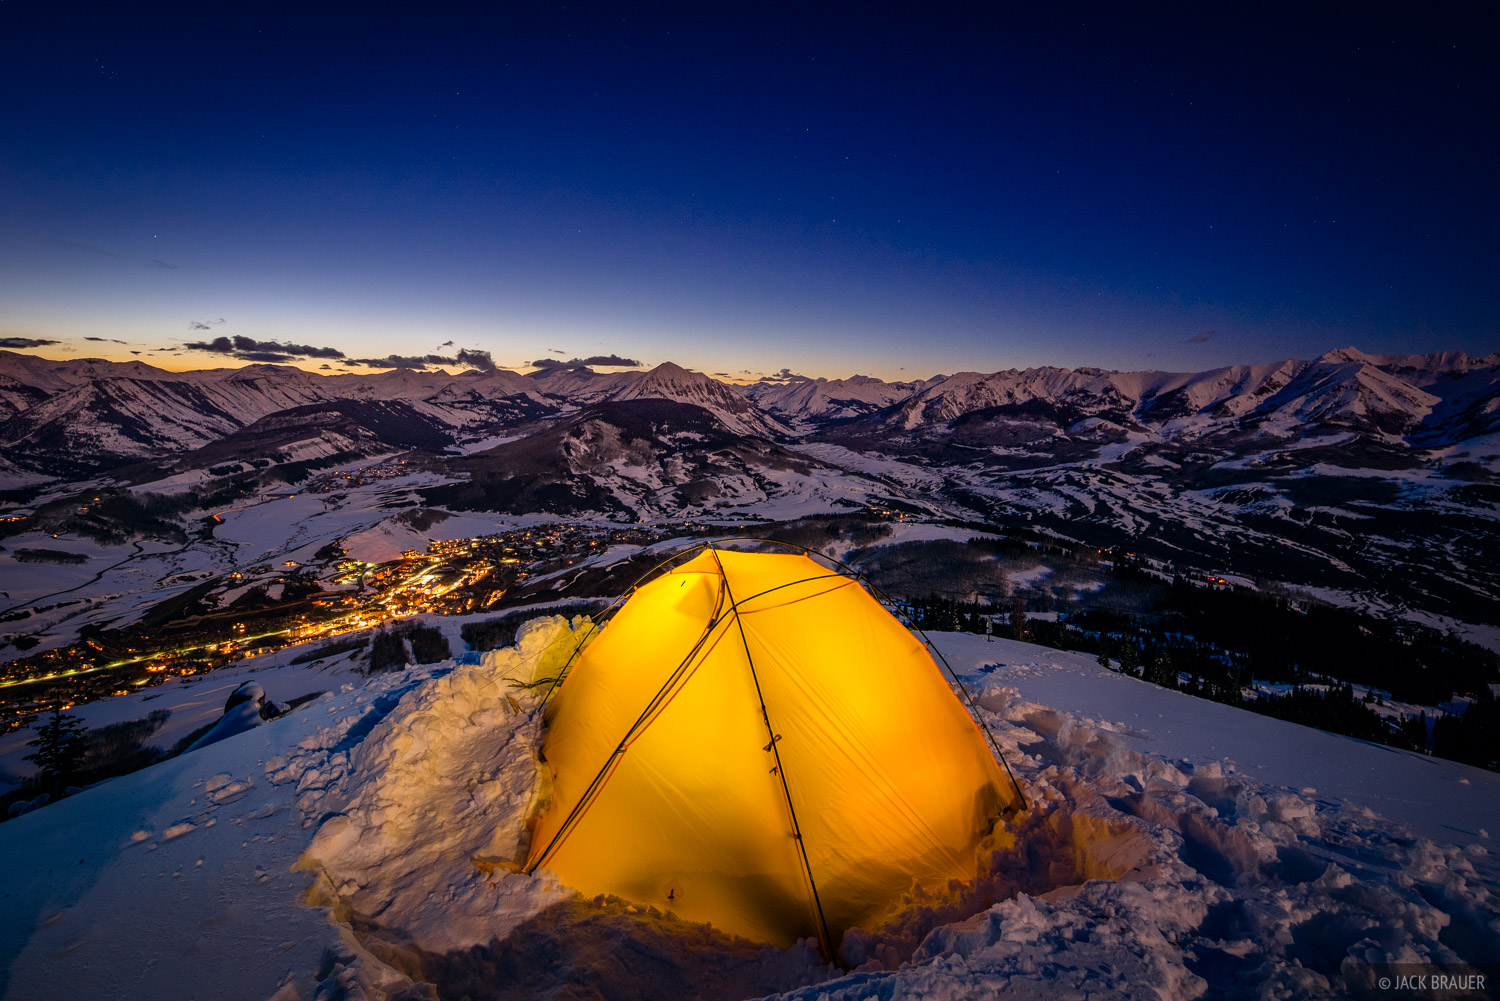 Colorado,Crested Butte,tent, moonlight, Ruby Range, Elk Mountains, dusk, photo